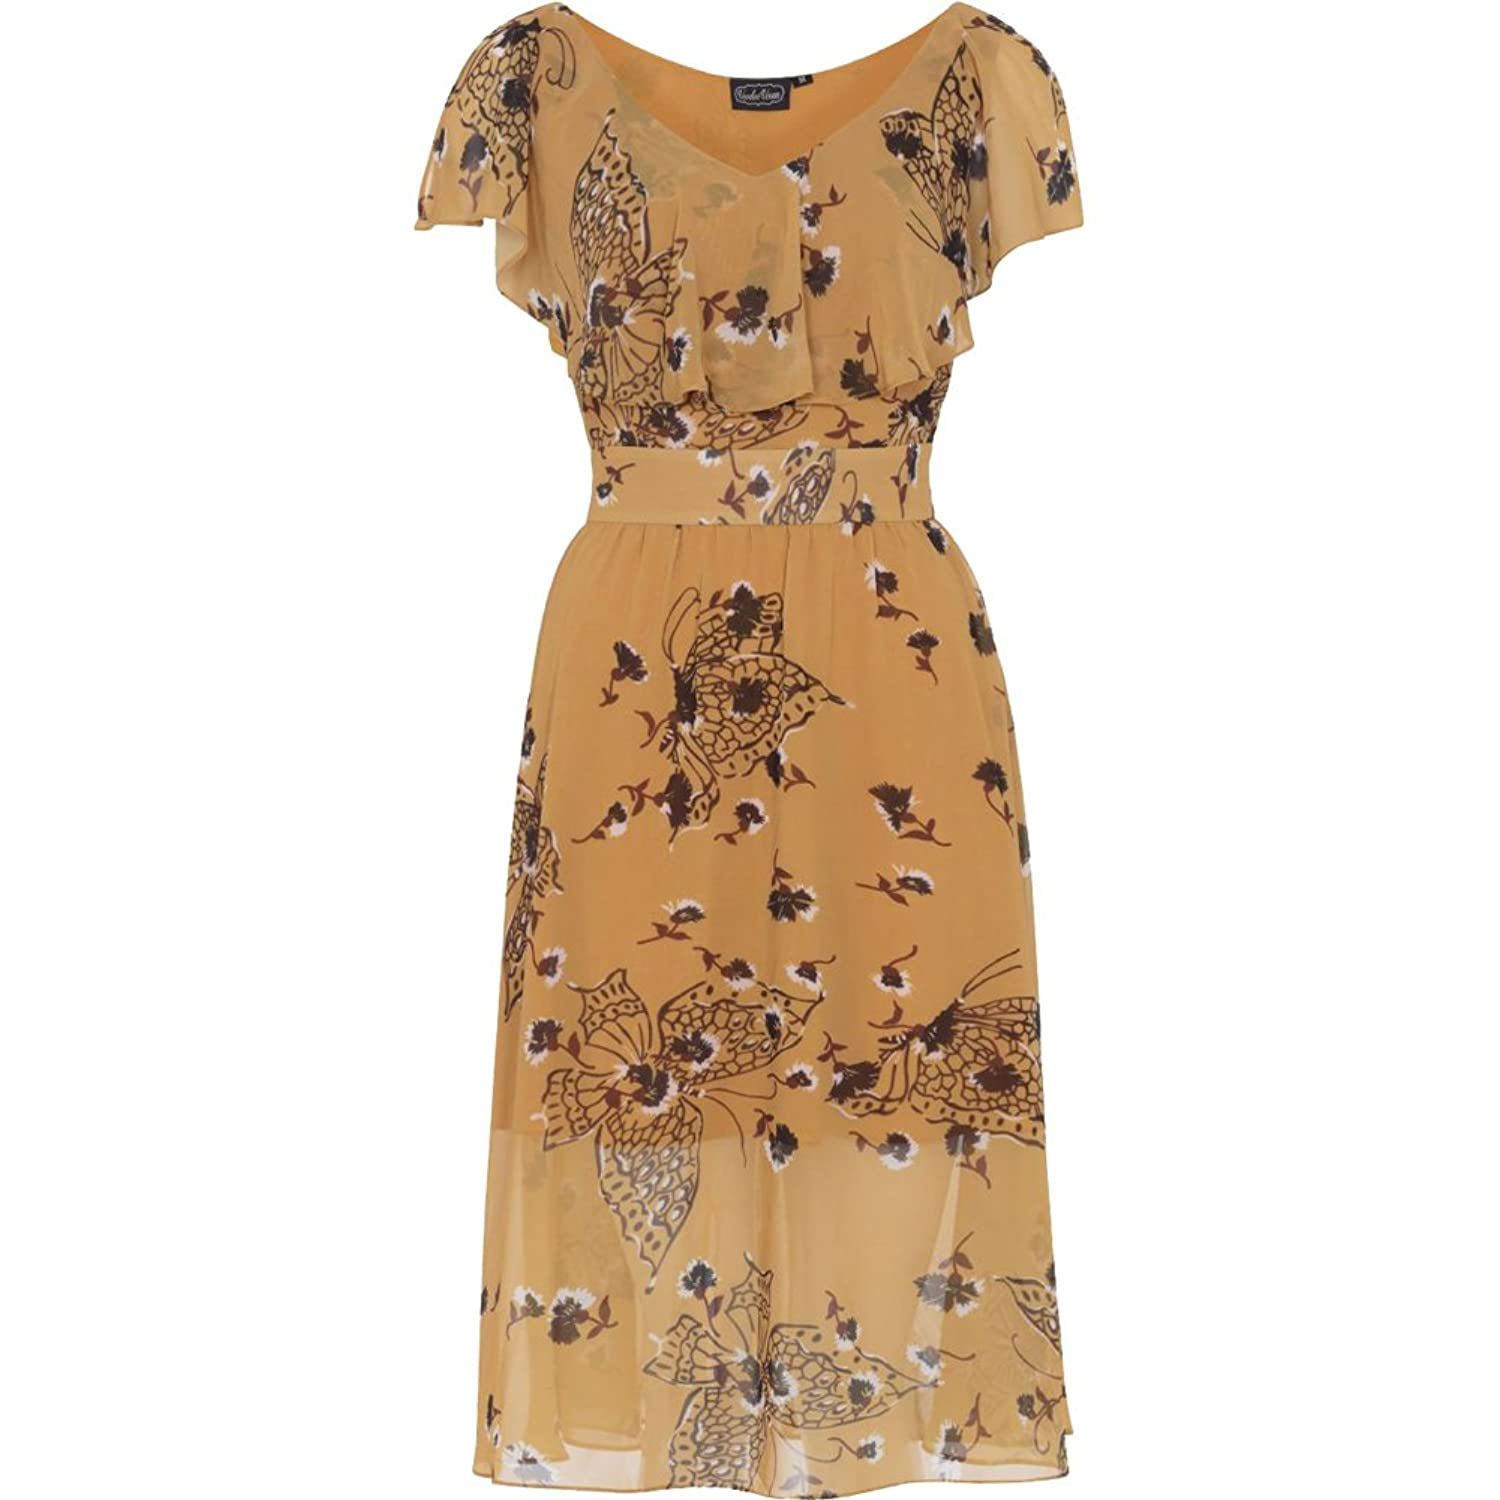 1950s Prom Dresses & Party Dresses Voodoo Vixen Posy Butterfly Dress Yellow $72.99 AT vintagedancer.com